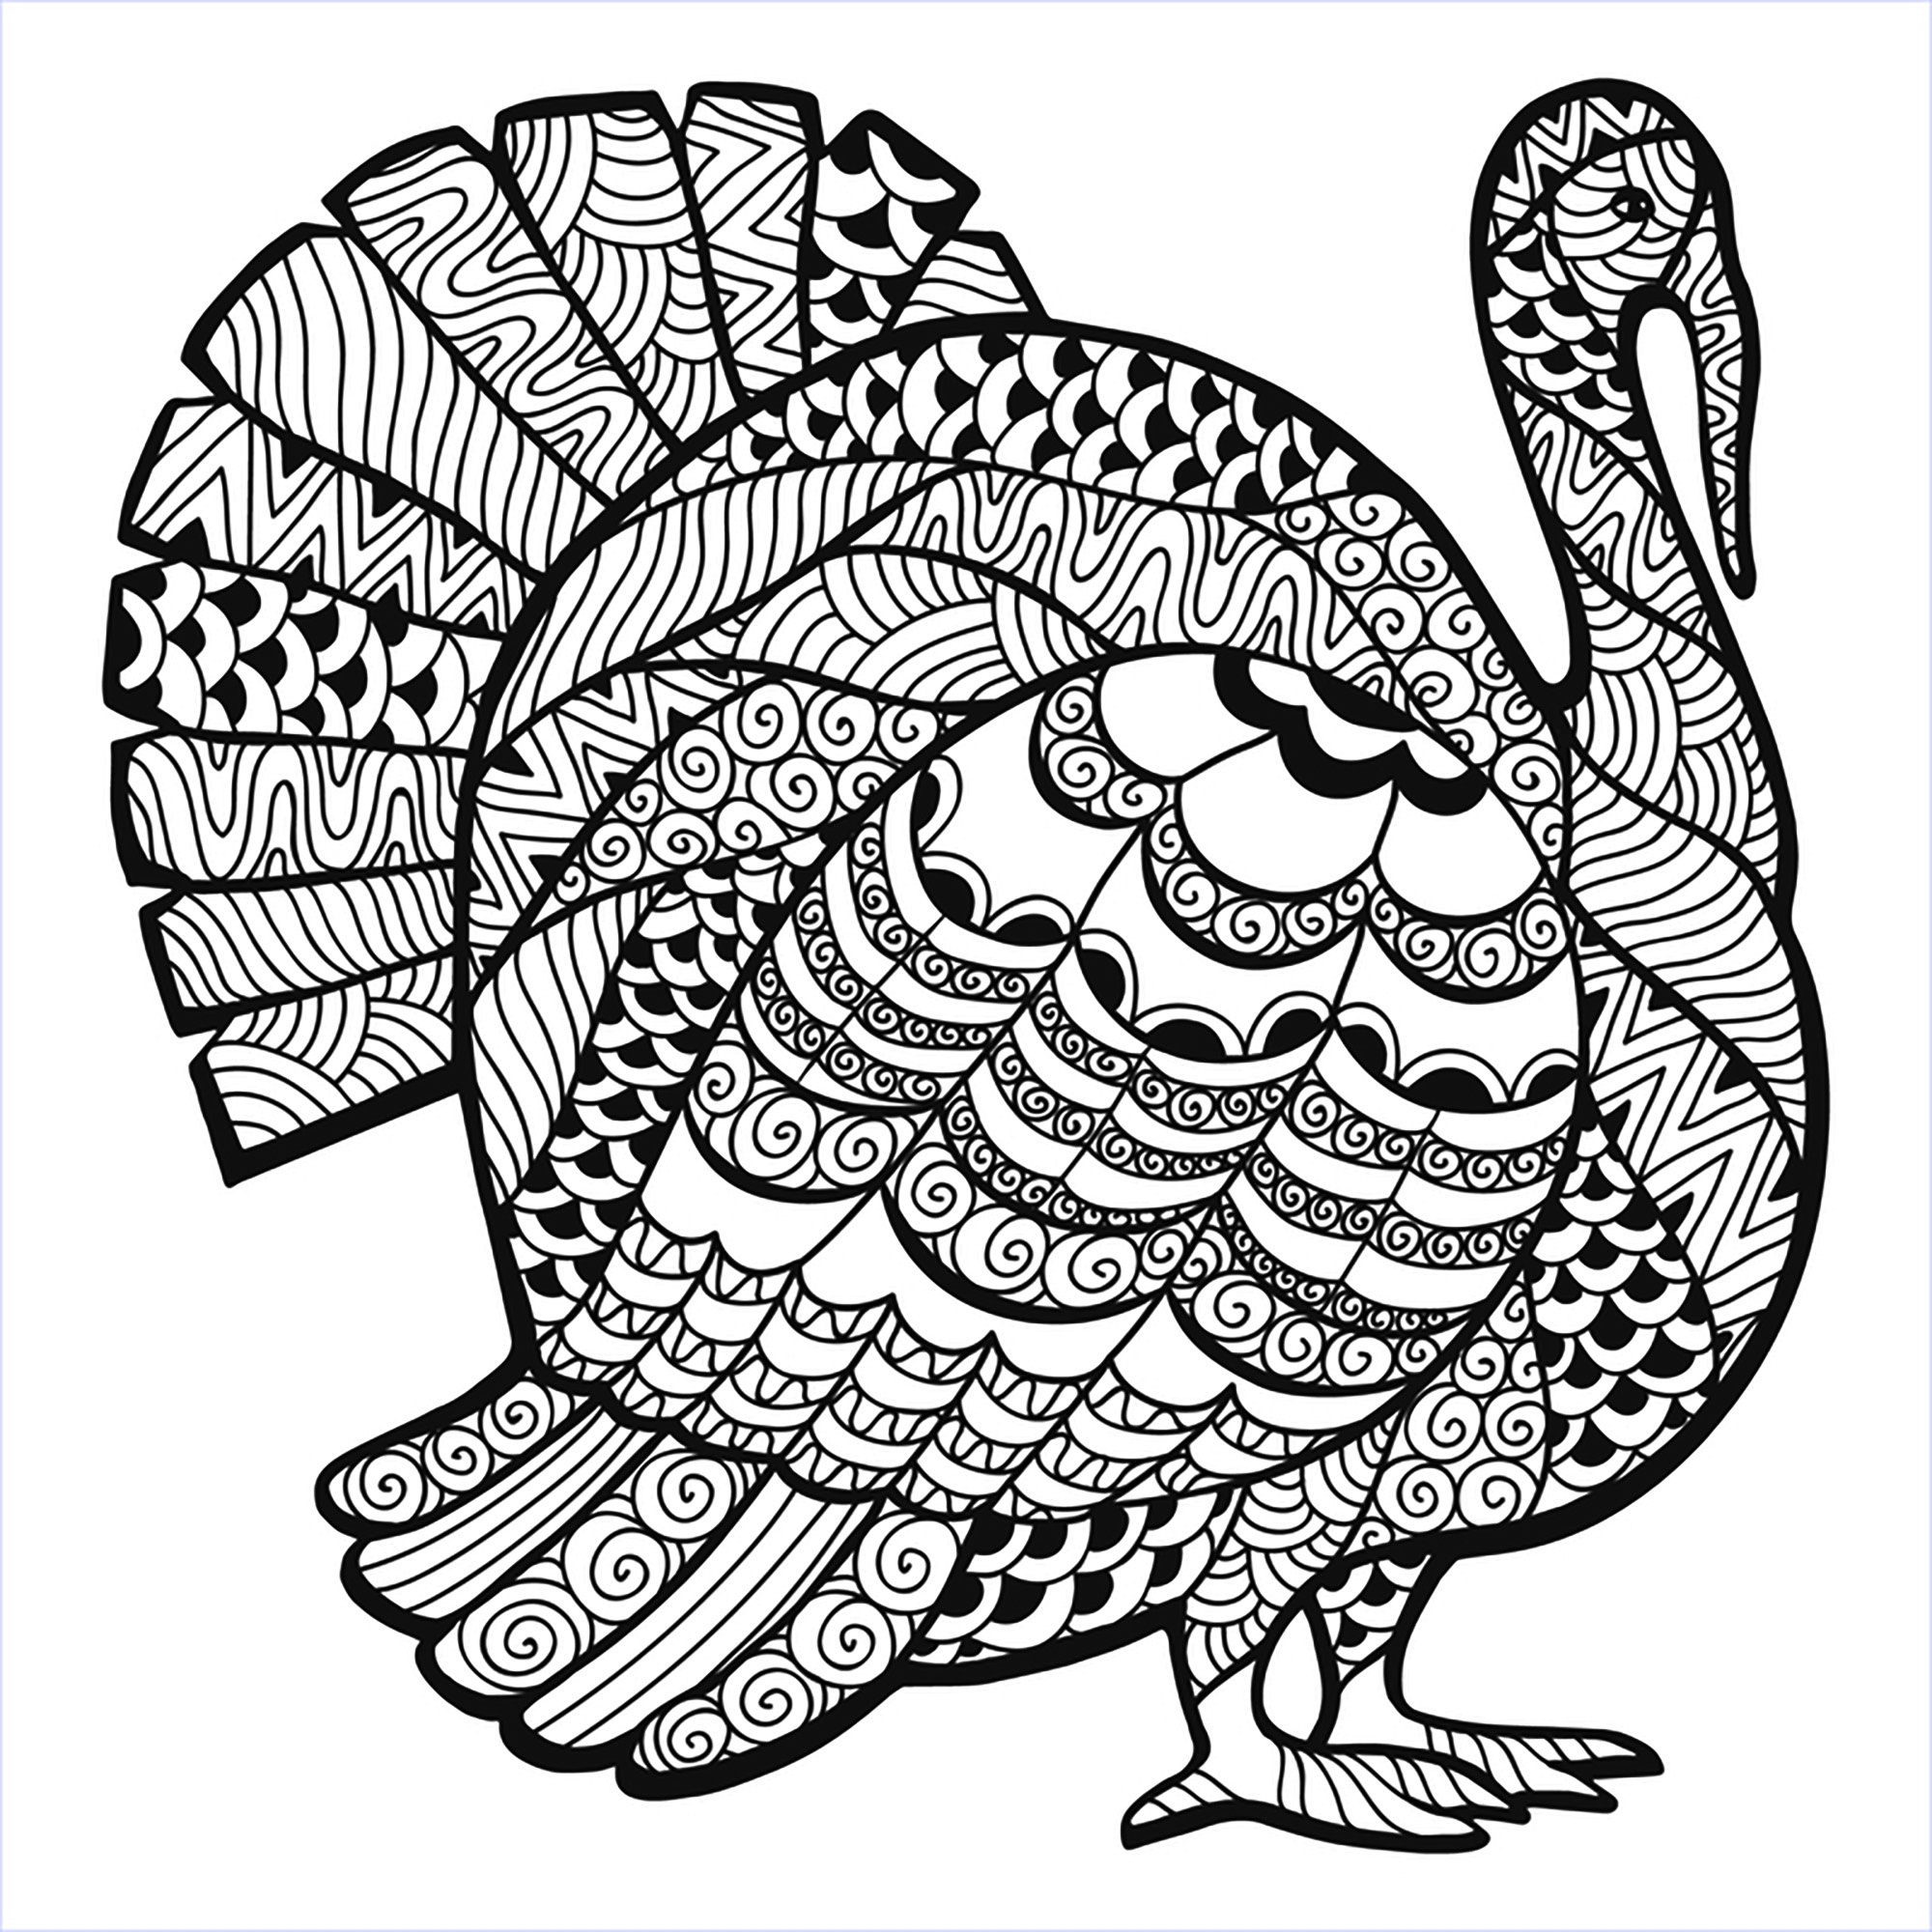 Turkey Zentangle Coloring Sheet - Thanksgiving Adult Coloring Pages - Free Printable Turkey Coloring Pages